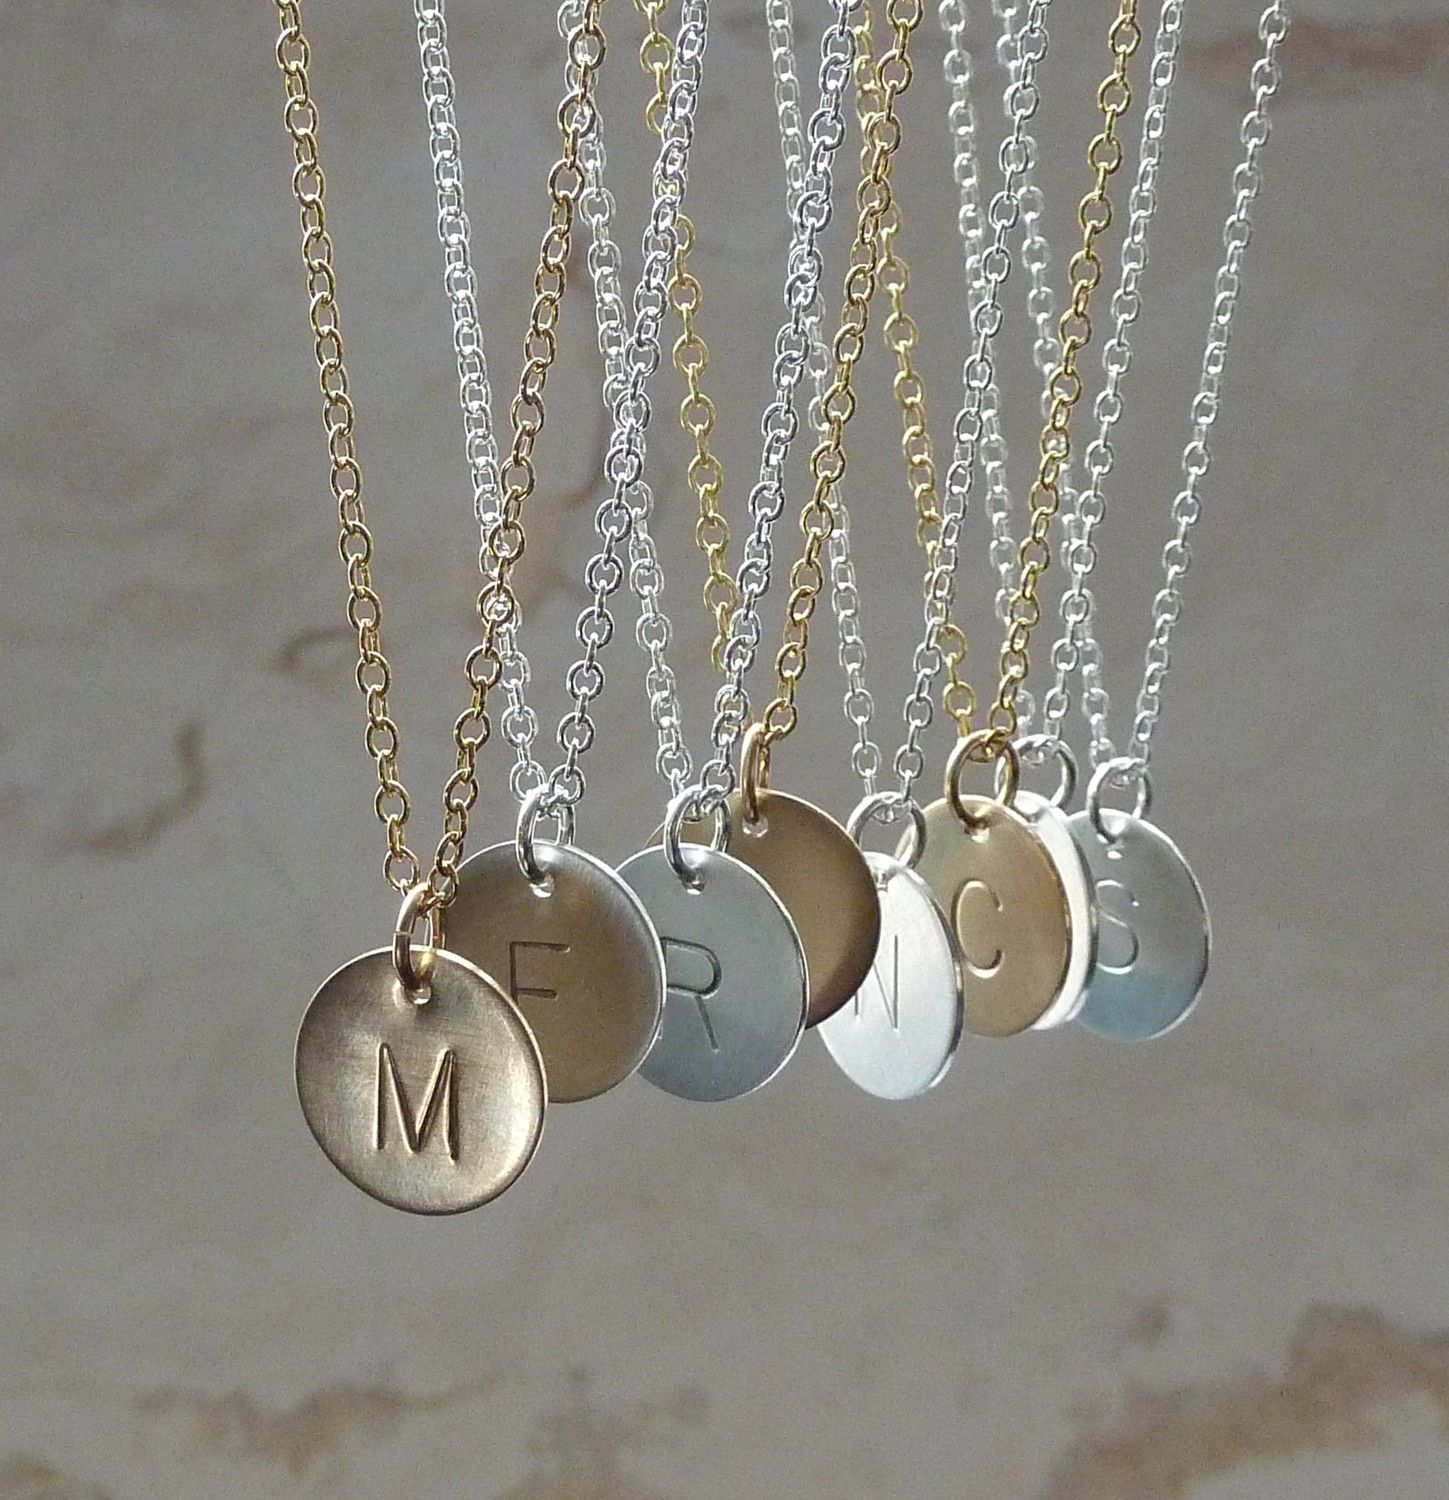 personalized gift original initial layers custom necklace pendant jewelry letter product bridesmaid gold goldfilled